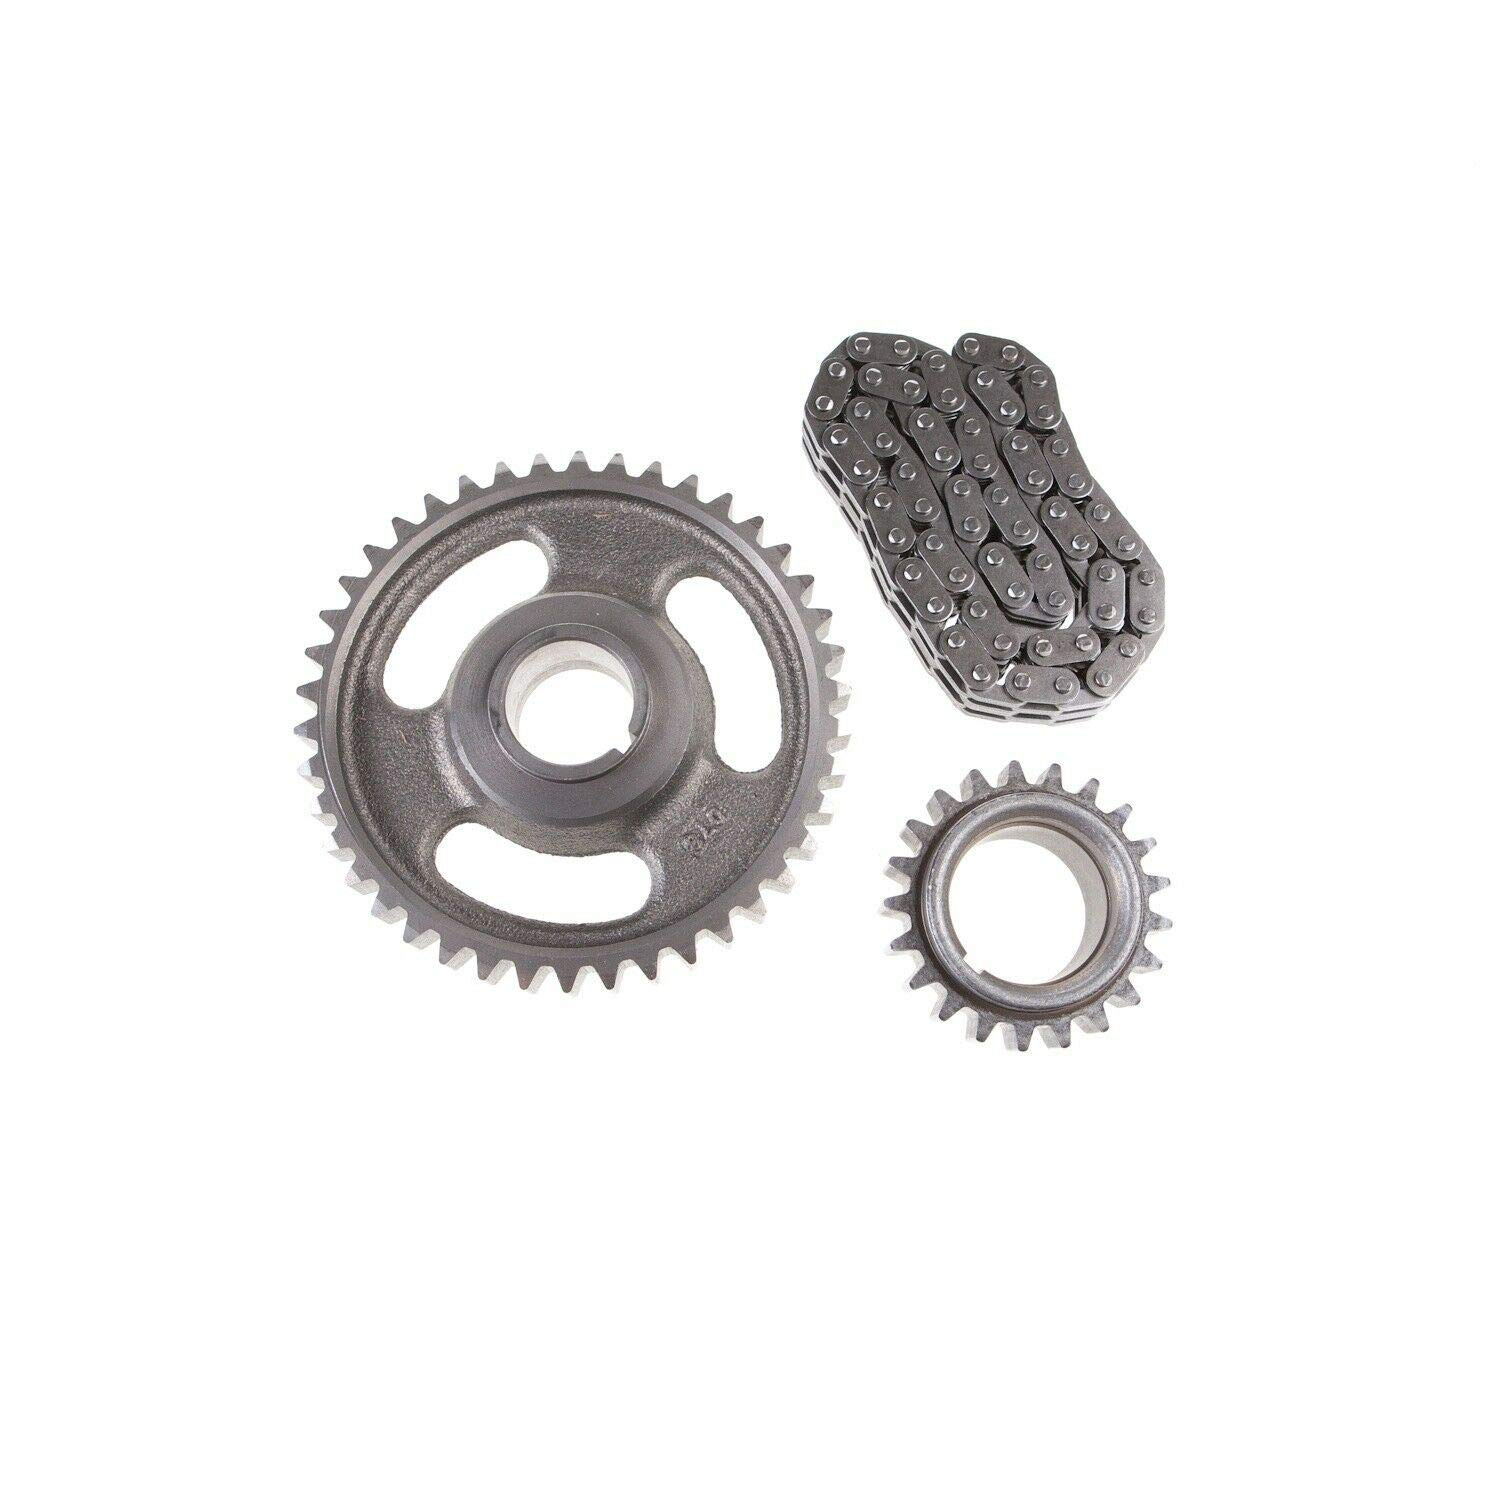 Melling 3-350S Timing Chain Set